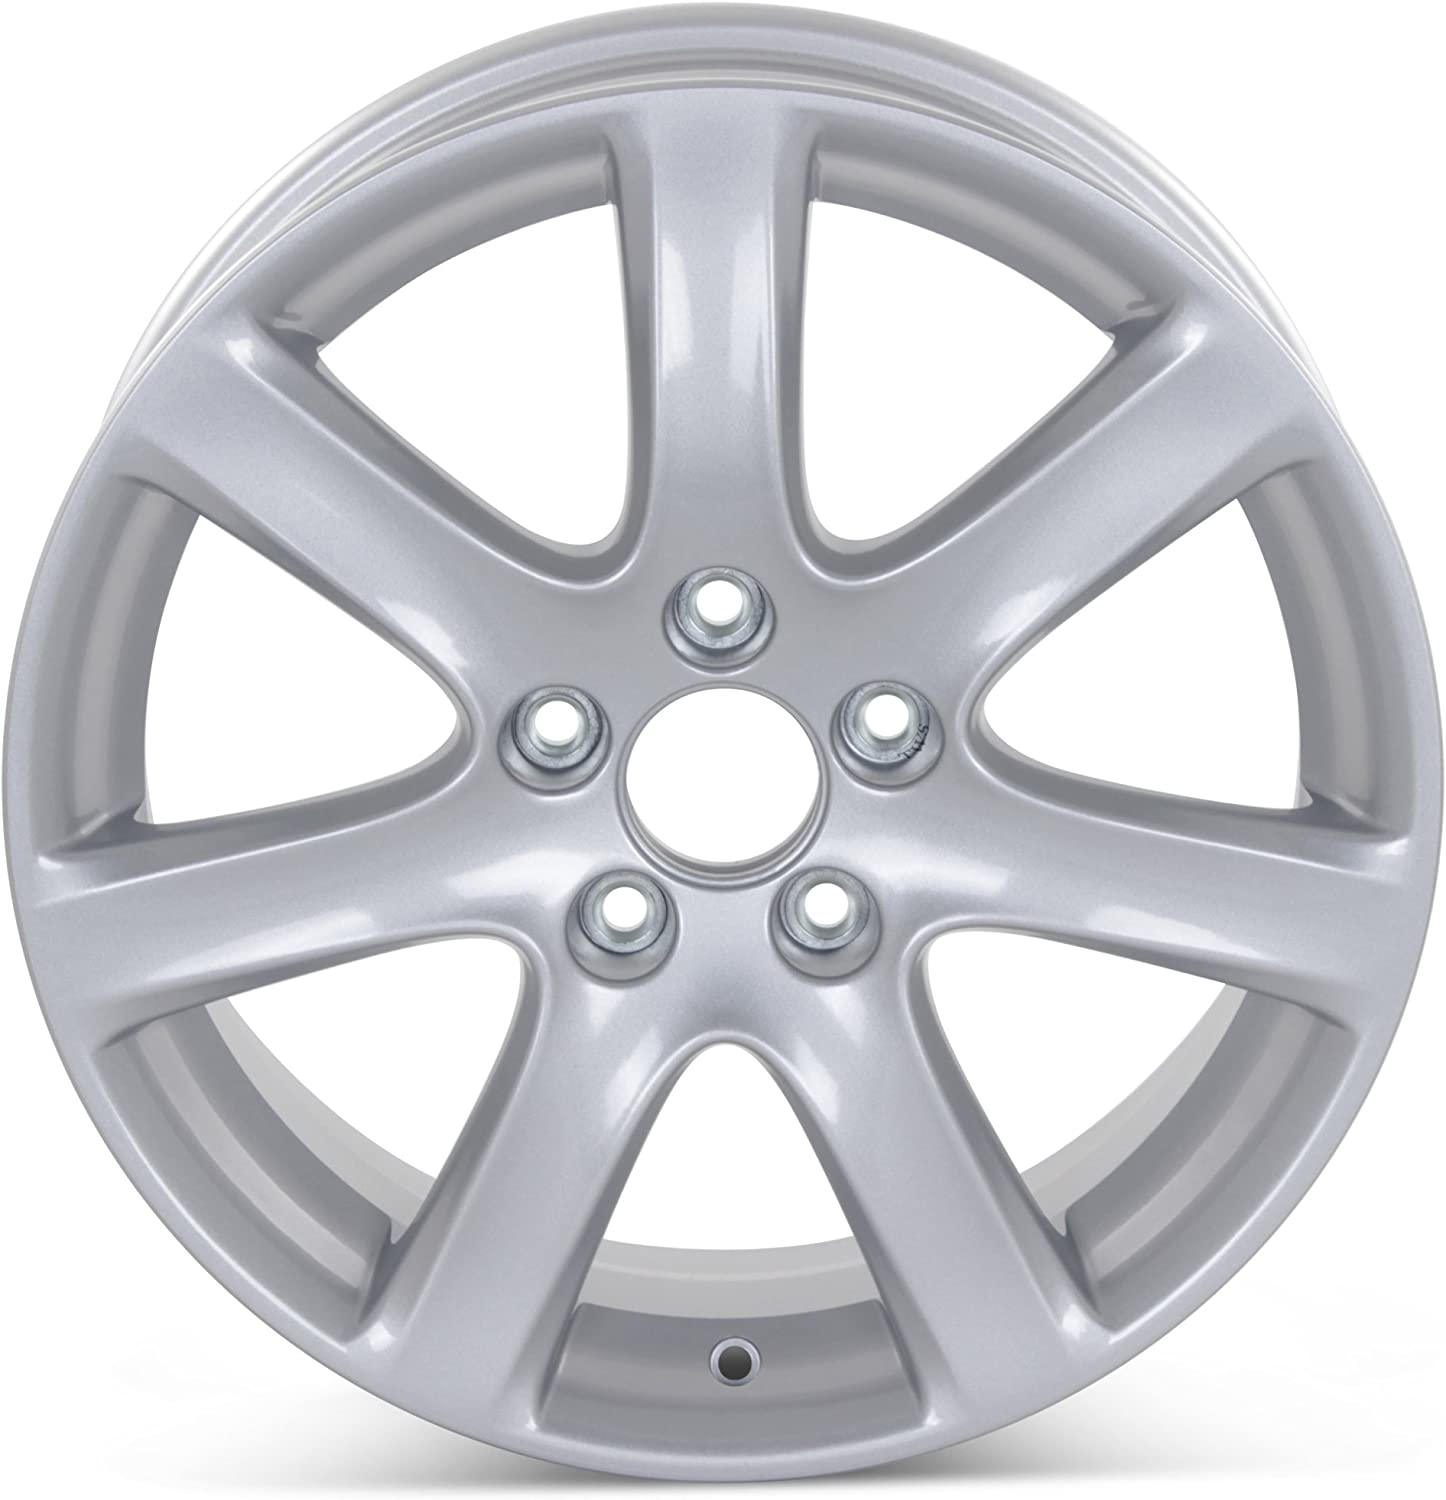 New 17 x 7 Alloy Replacement Wheel for Acura TSX 2004 2005 Rim 71731